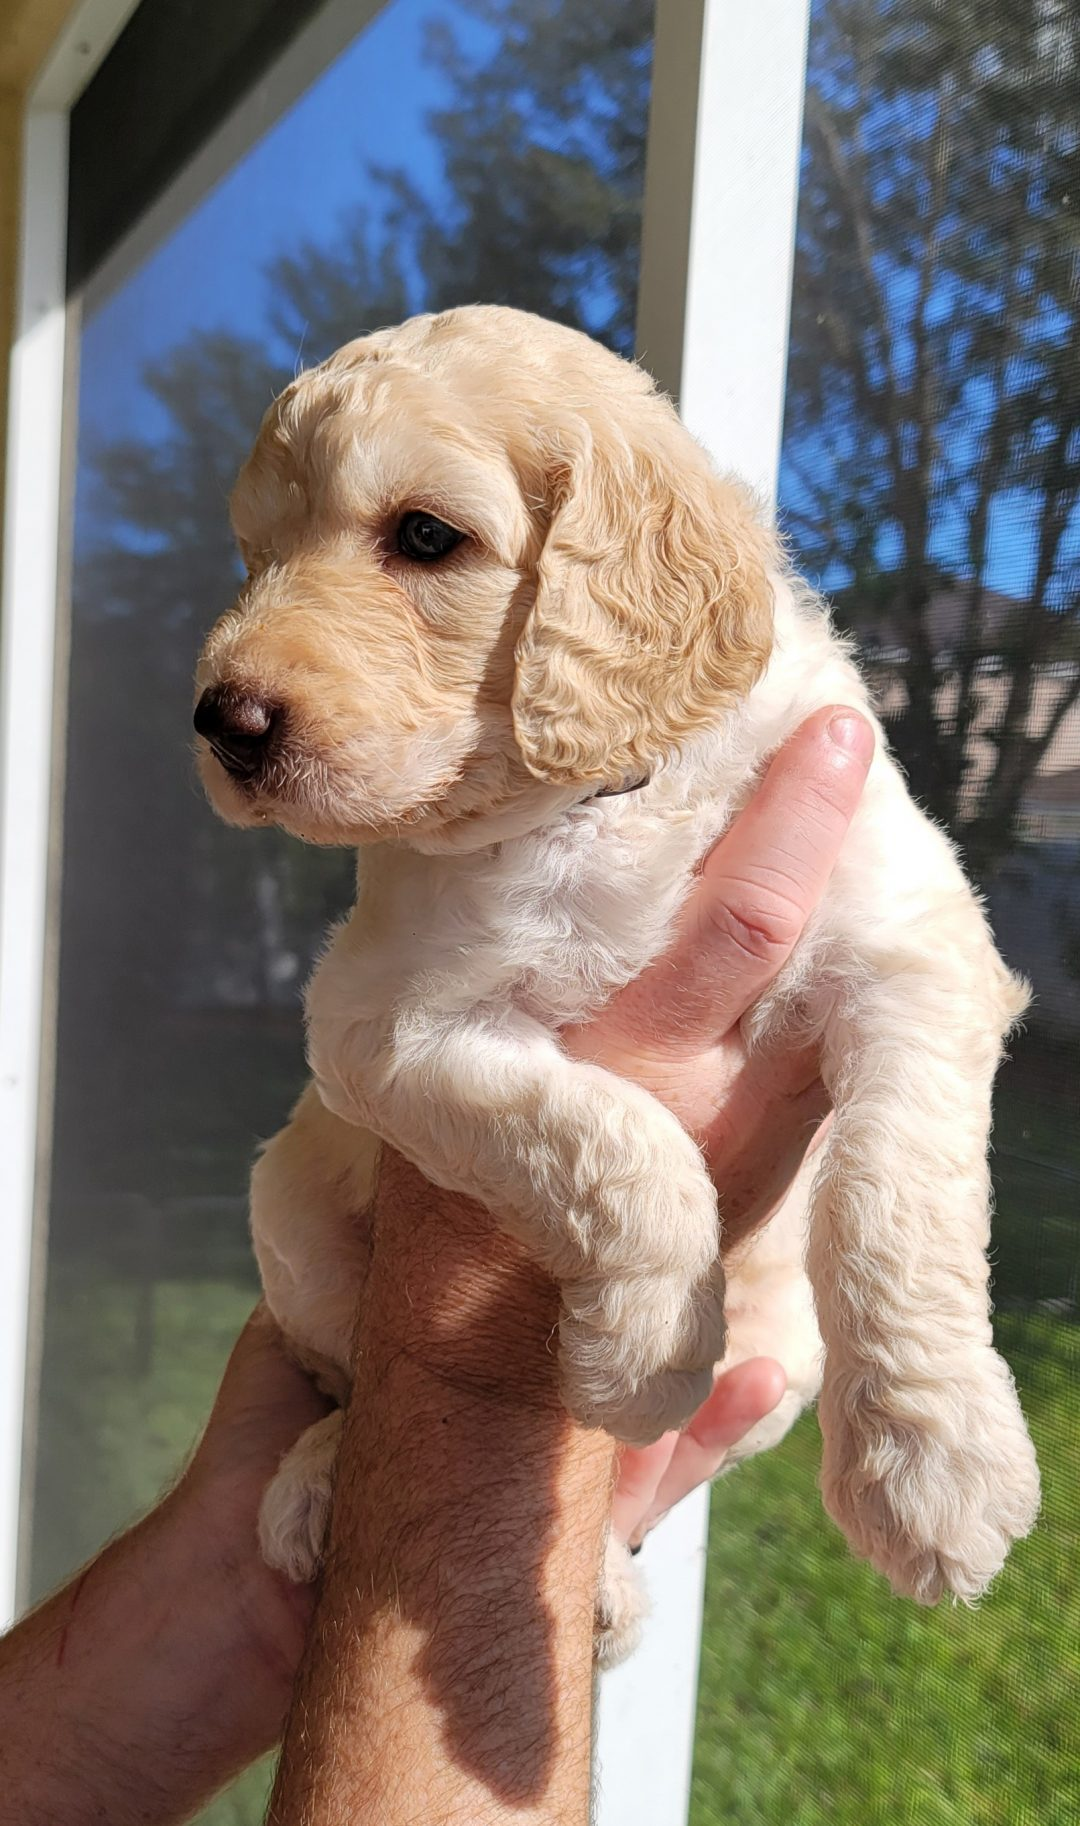 Orion - male AKC Goldendoodle puppy for sale in Melbourne, Florida